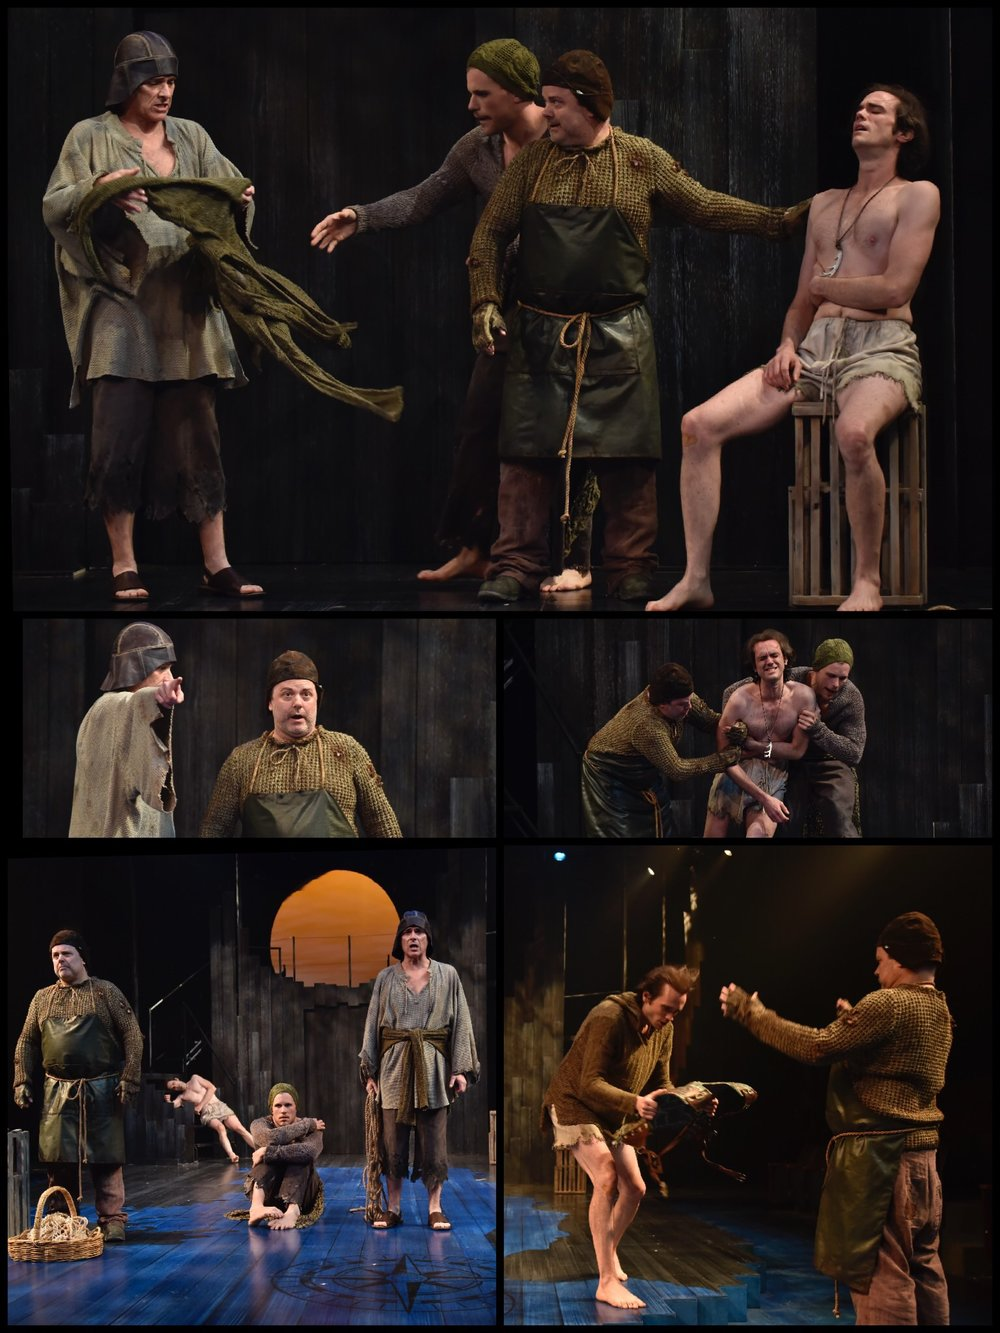 Pericles is saved by the Fisherman played by the incredible Brad Deplanche, Richard Watson and Brad Frost.